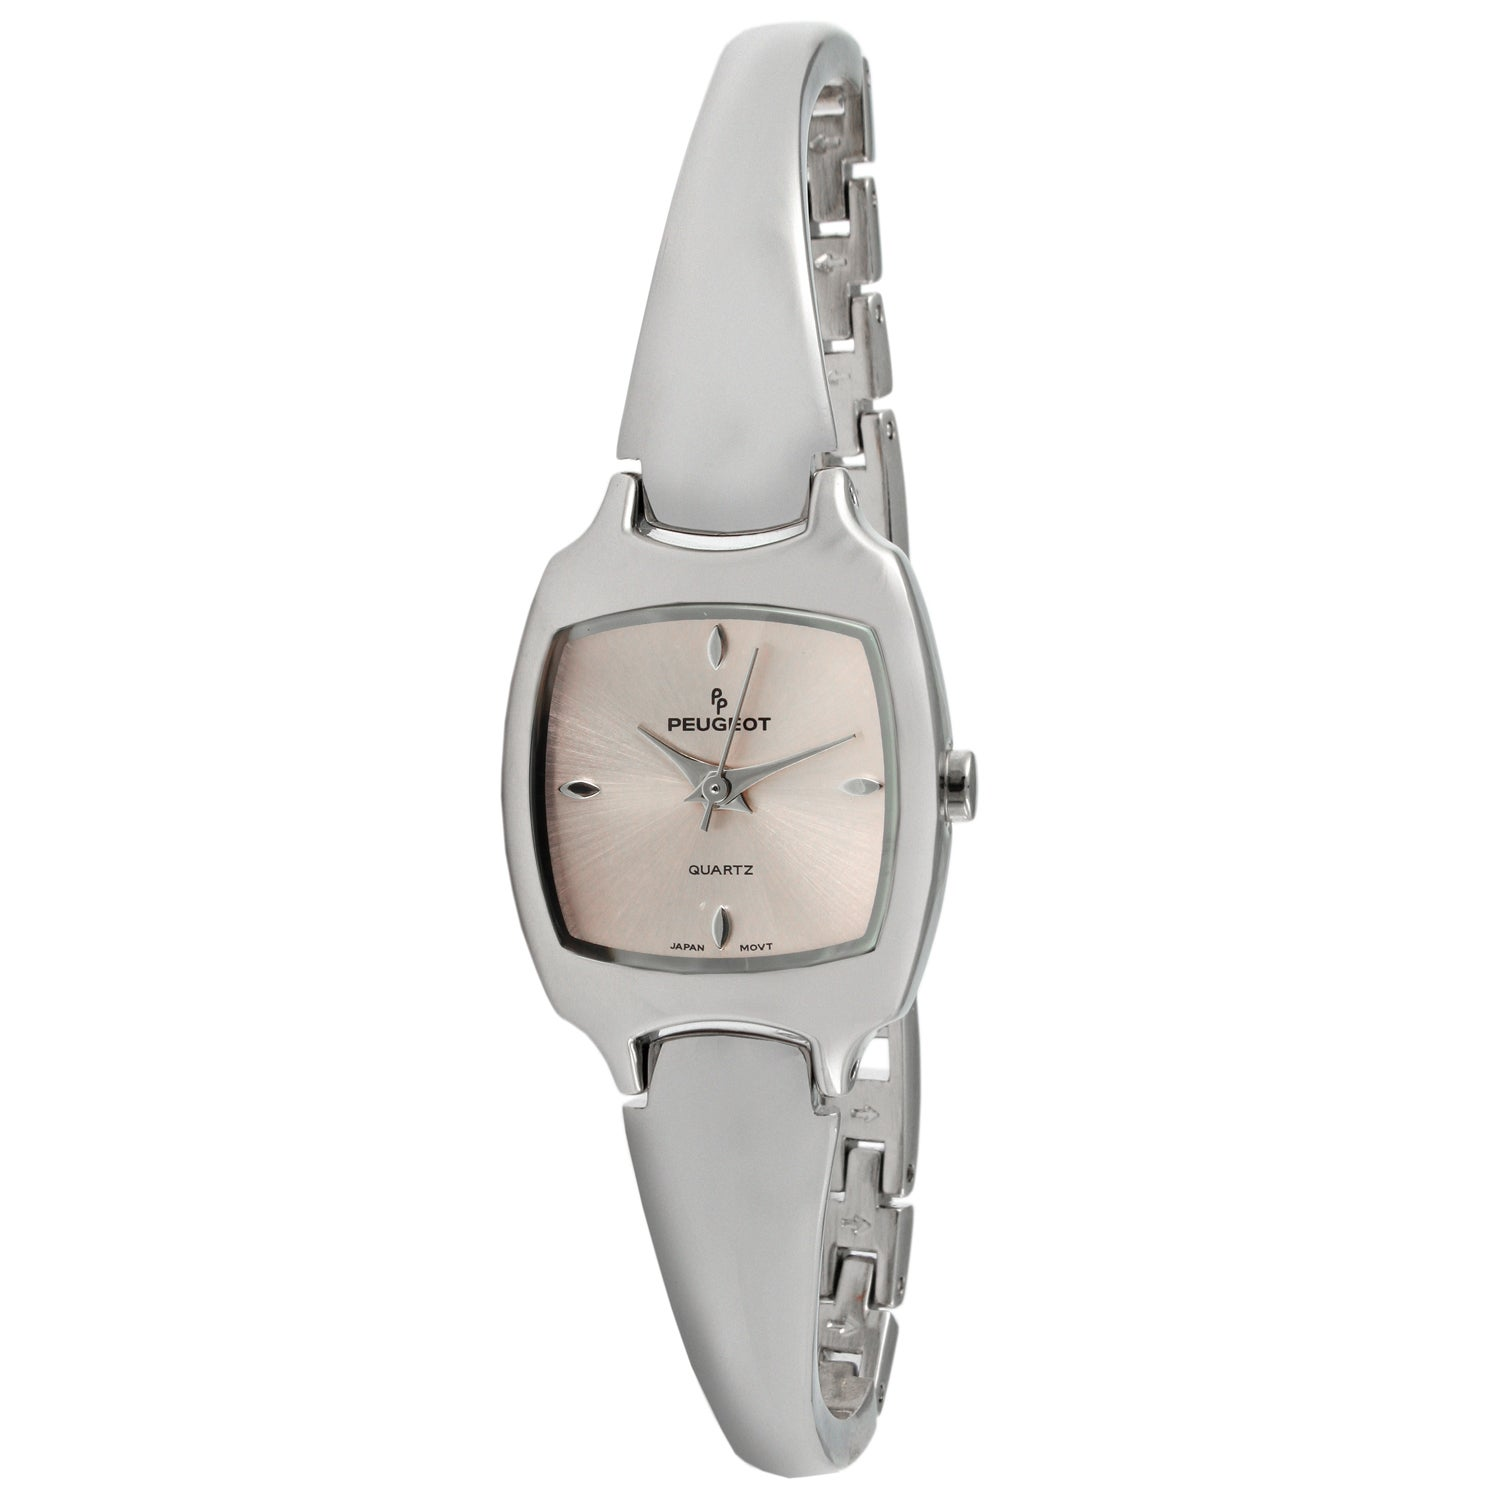 Peugeot Women's Pink Dial Half Bangle Watch (Peugeot Wome...